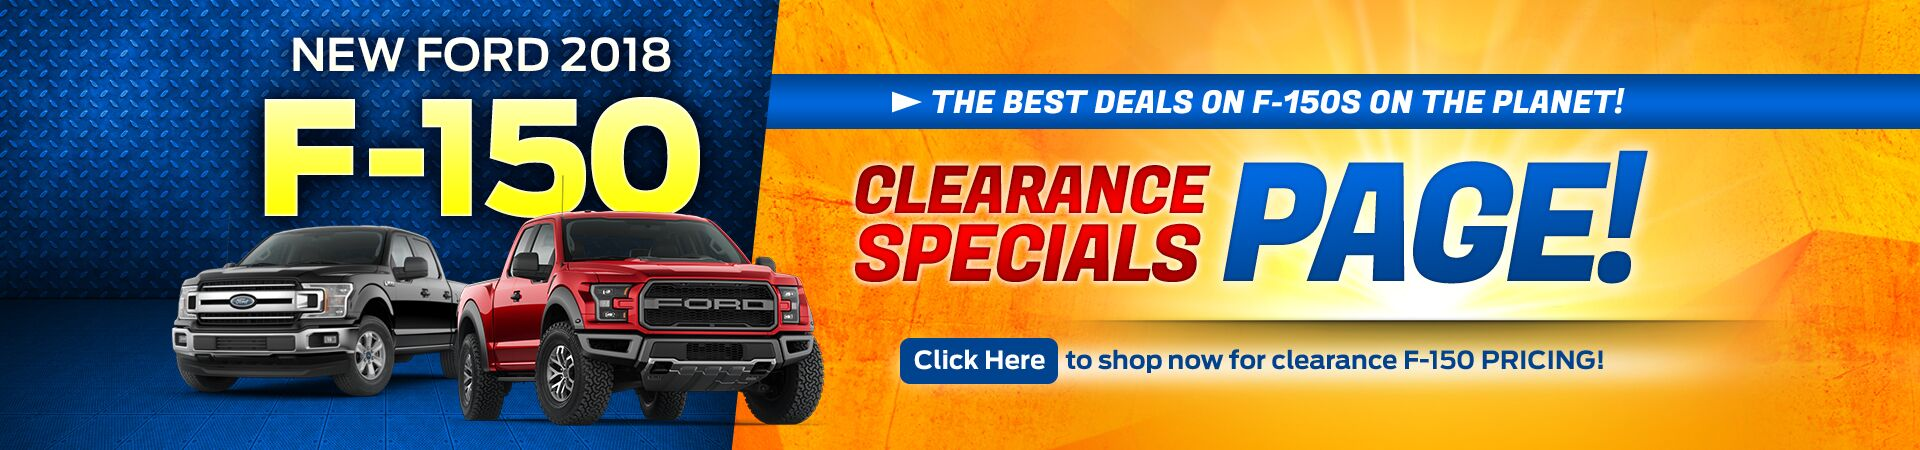 F-150 Clearance Specials